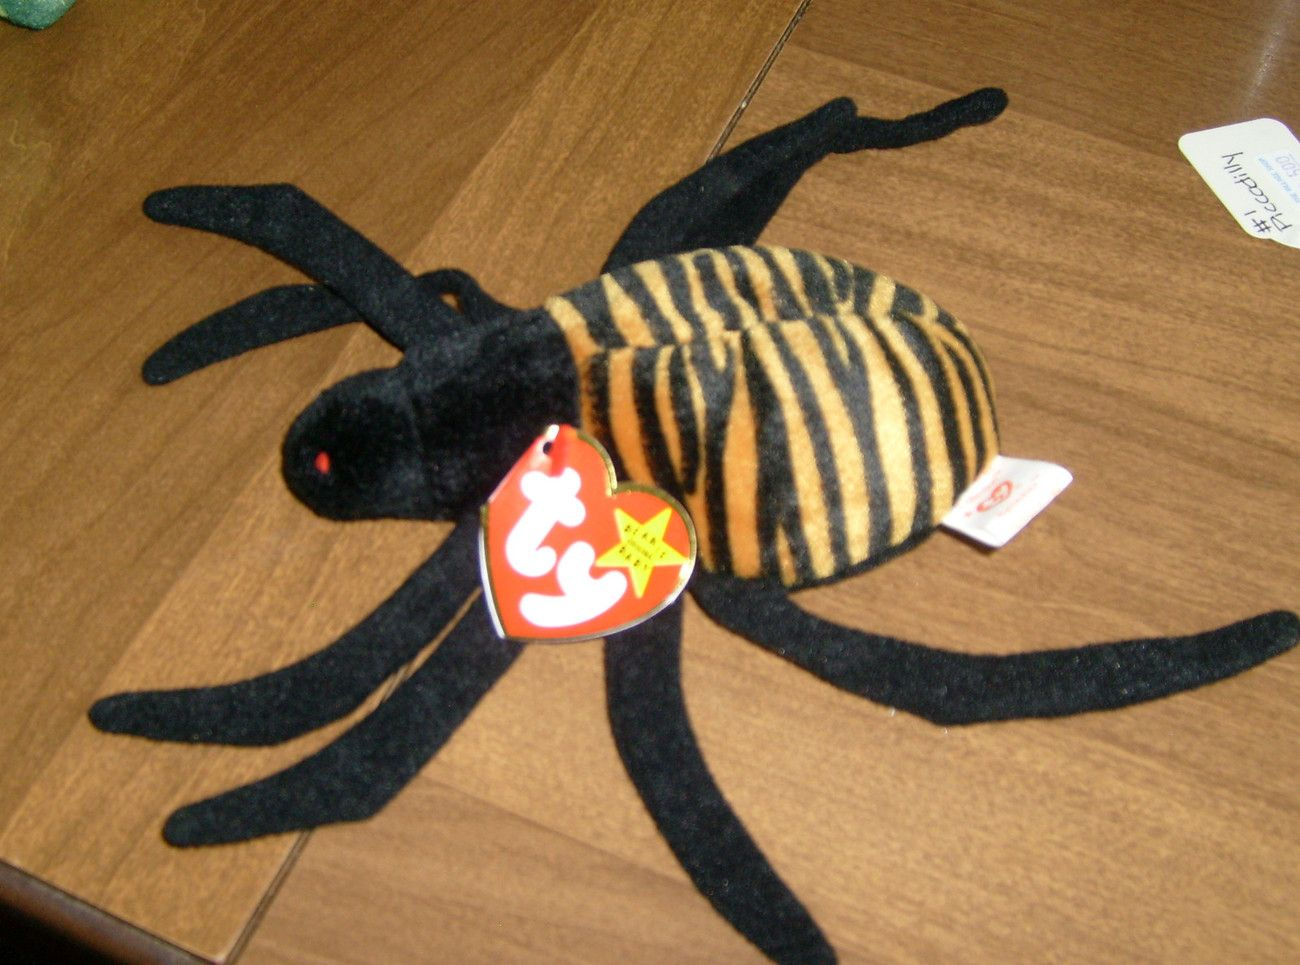 8670983d723 TY Original Beanie Baby Spinner the Spider Date of Birth 10-28-96 New with  tag